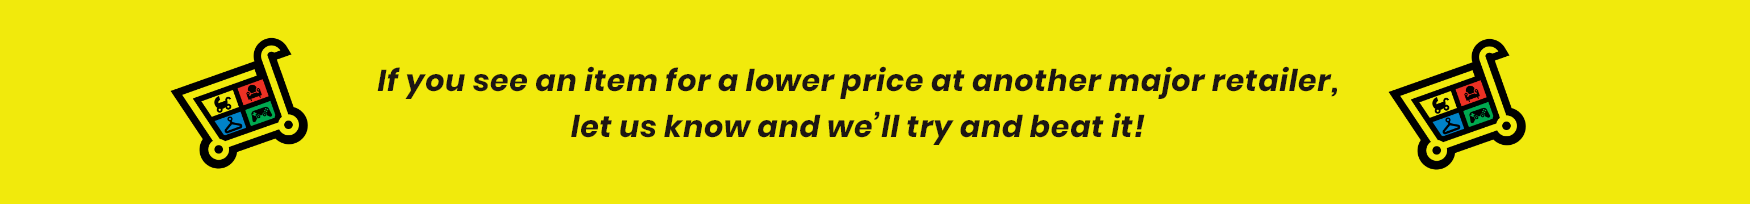 See an item at a lower price? Let us know and we will beat it!